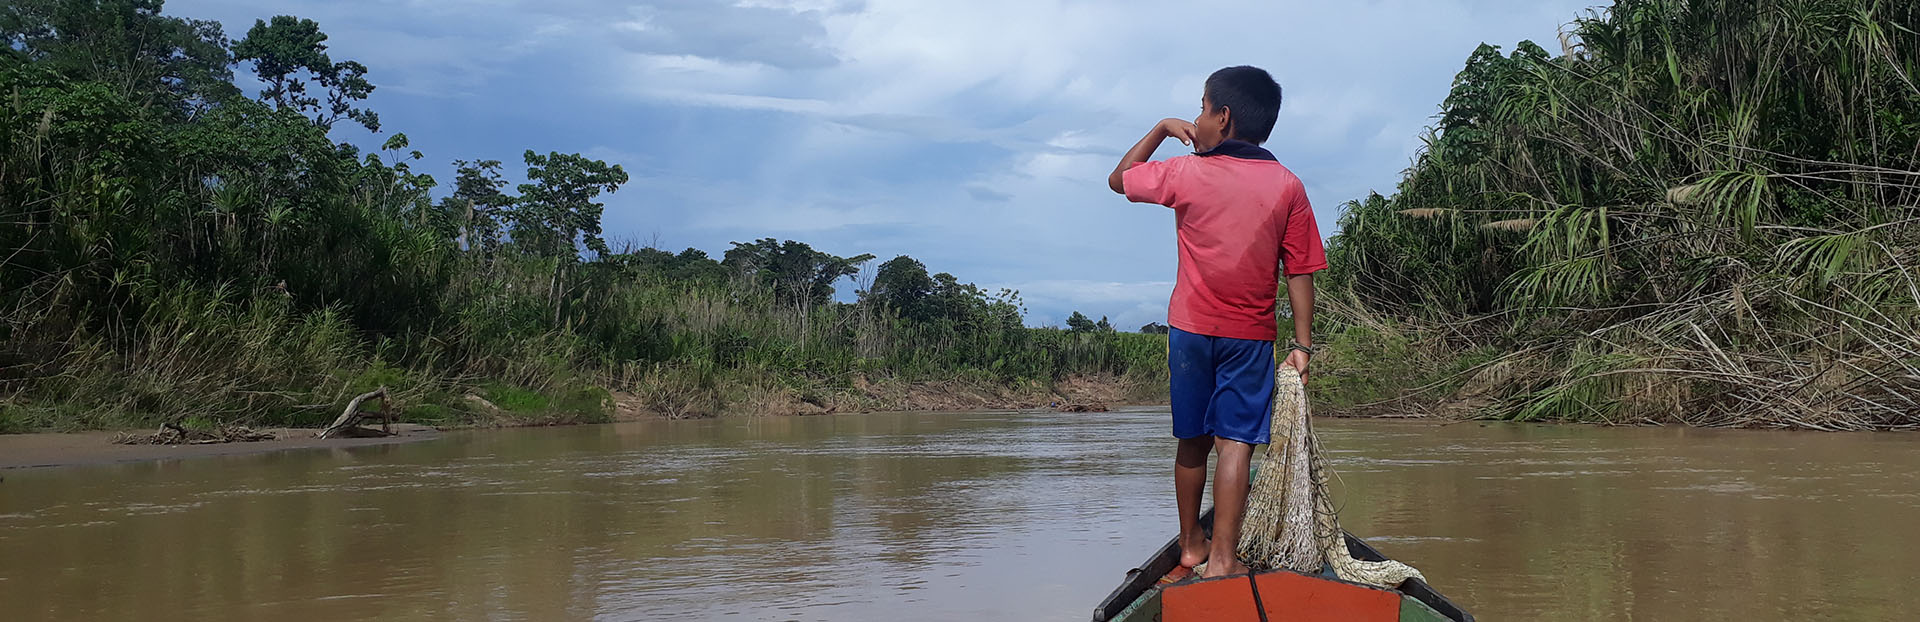 The Amazon: environmental heritage and strategic mission